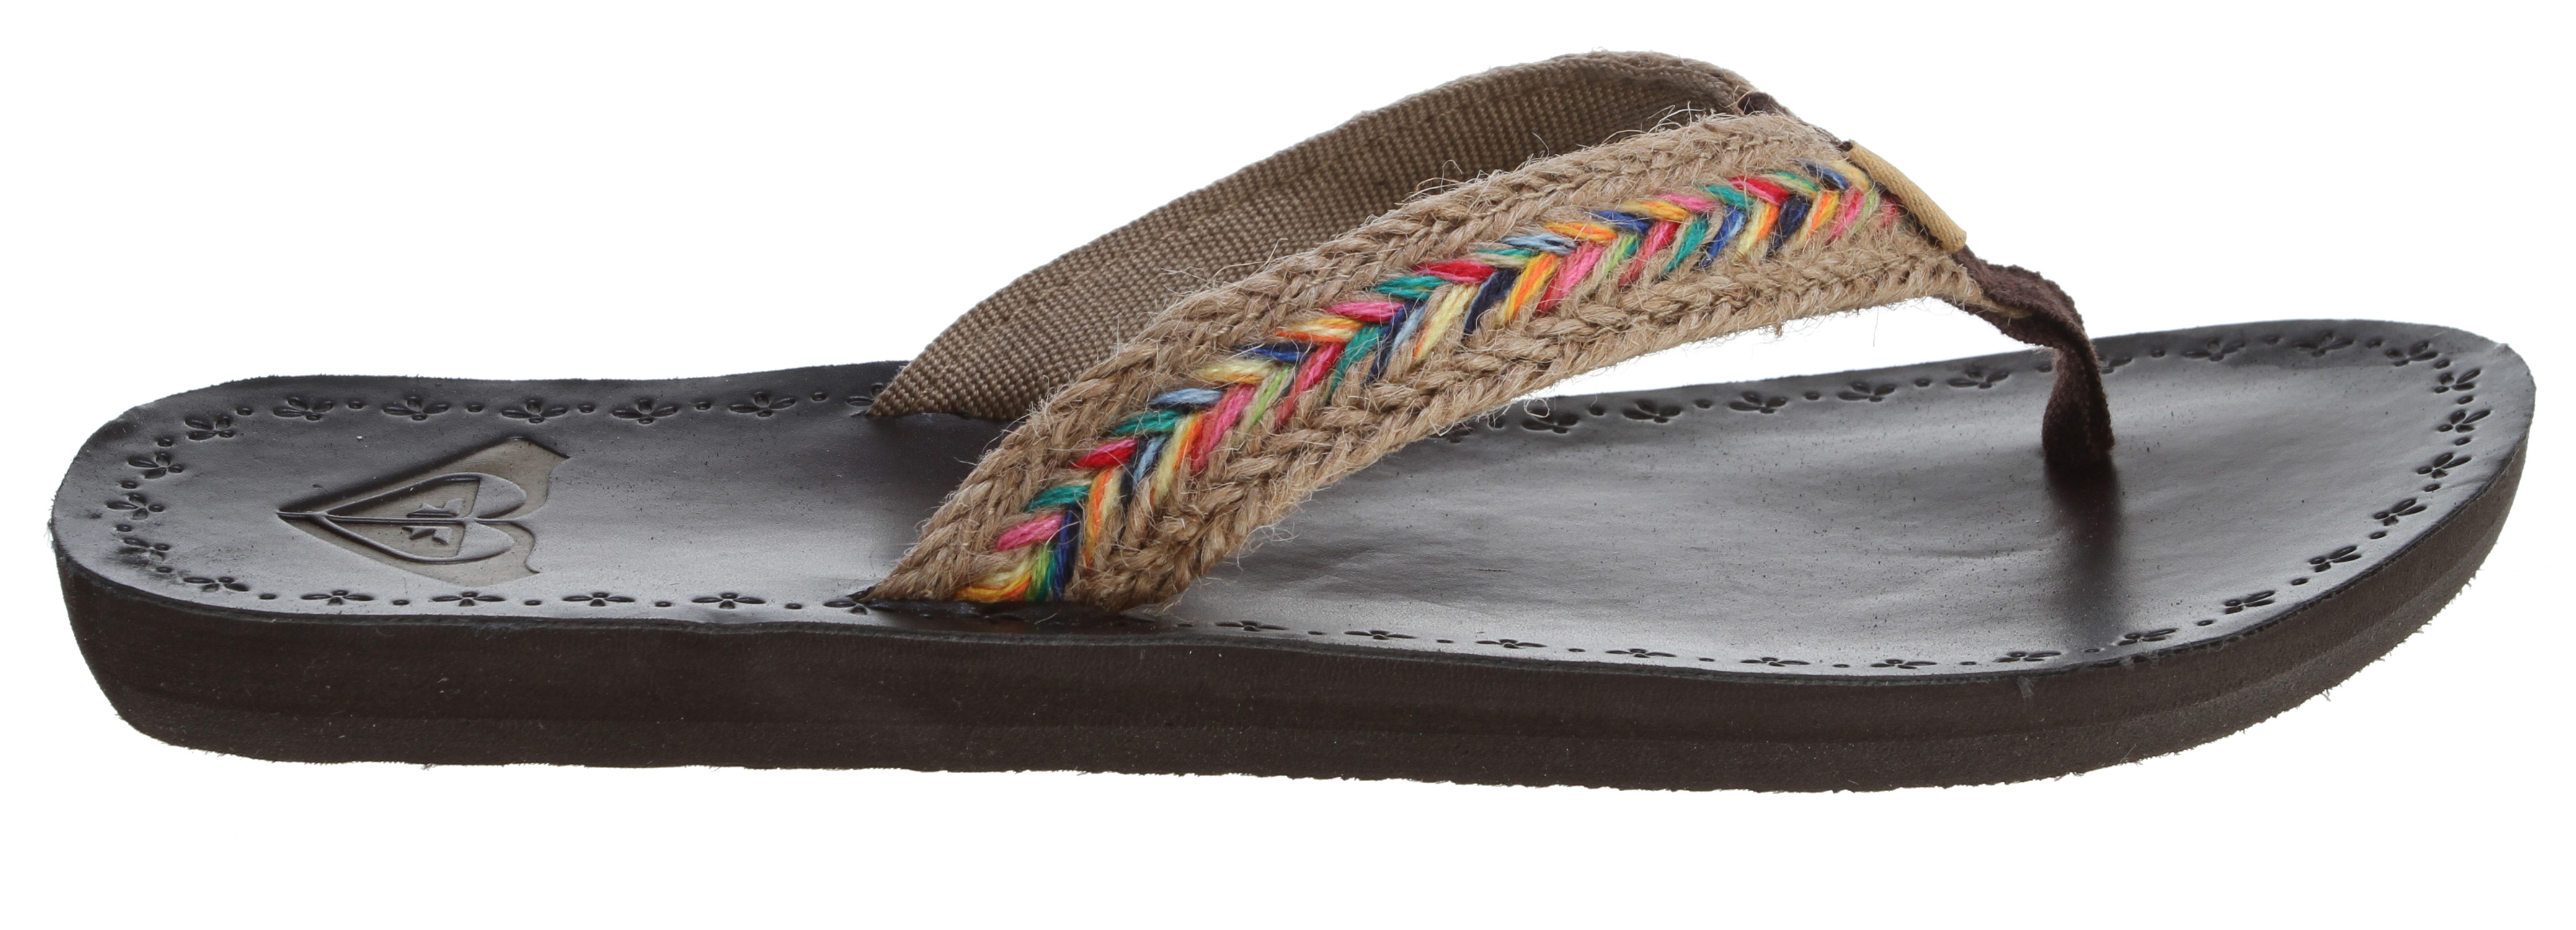 Surf Key Features of the Roxy Fiji Sandals: Braided pu and jute upper Soft poly web lining Woven flag label Leather insole embossed ROXY heart logo Rubber outsole - $19.95